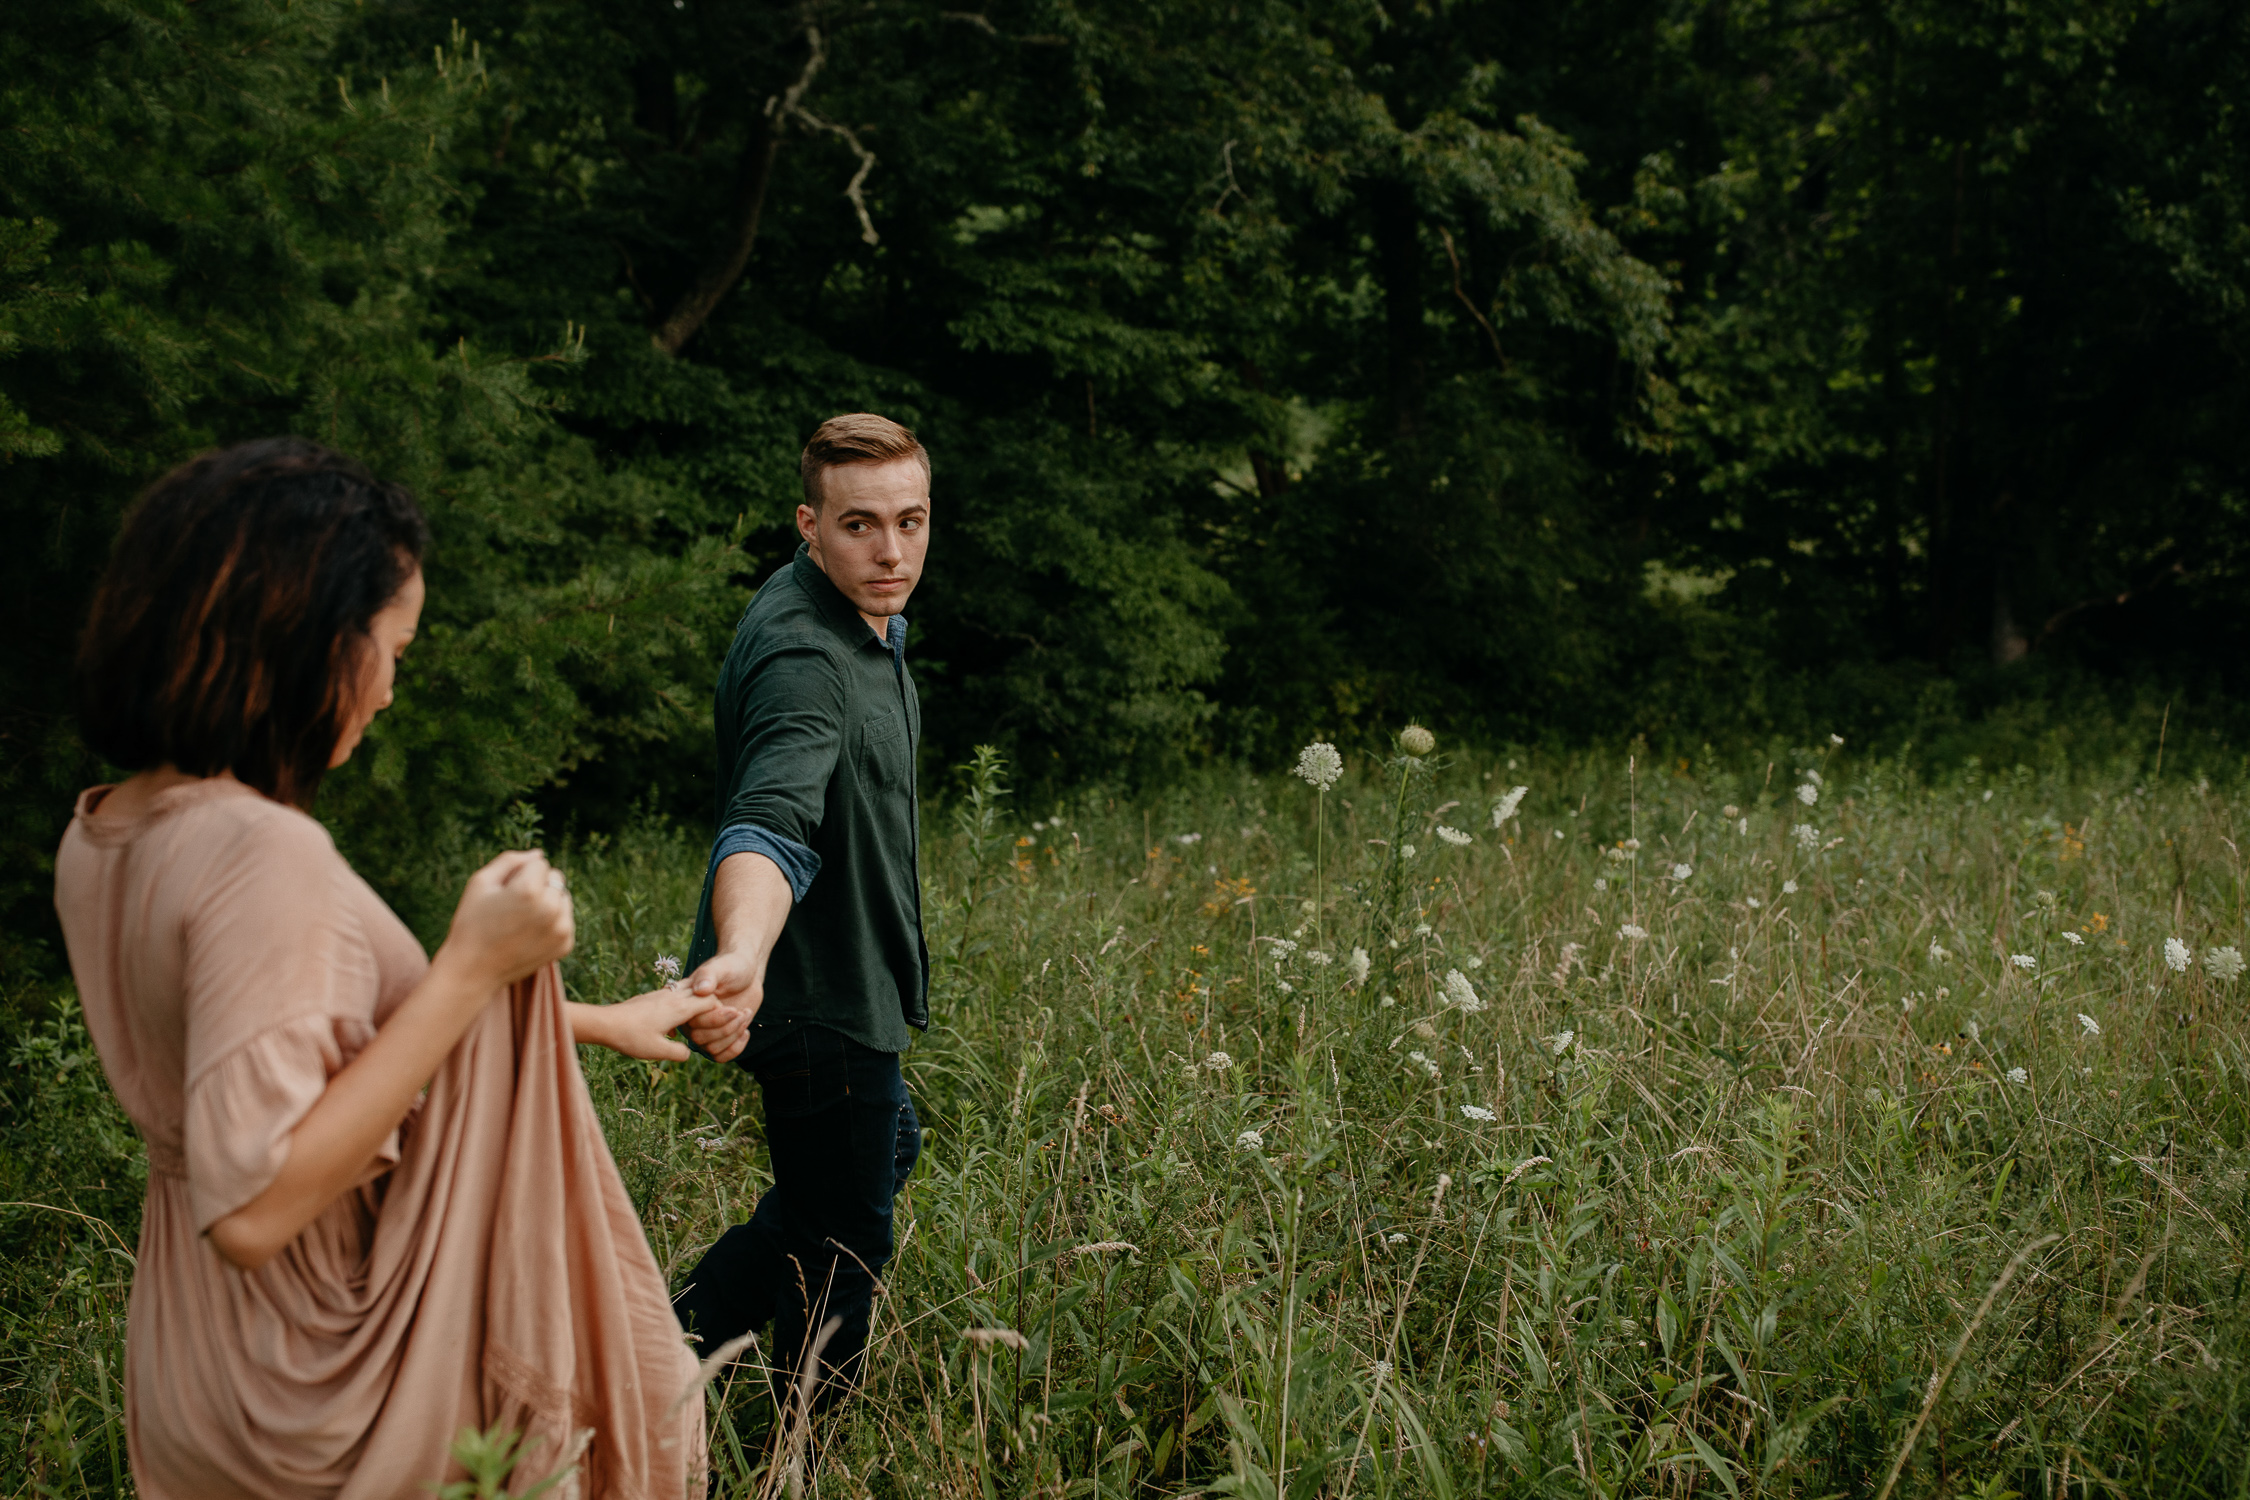 ariannamtorres and isaac engagement session at cades cove smoky mountains elopement-80.jpg